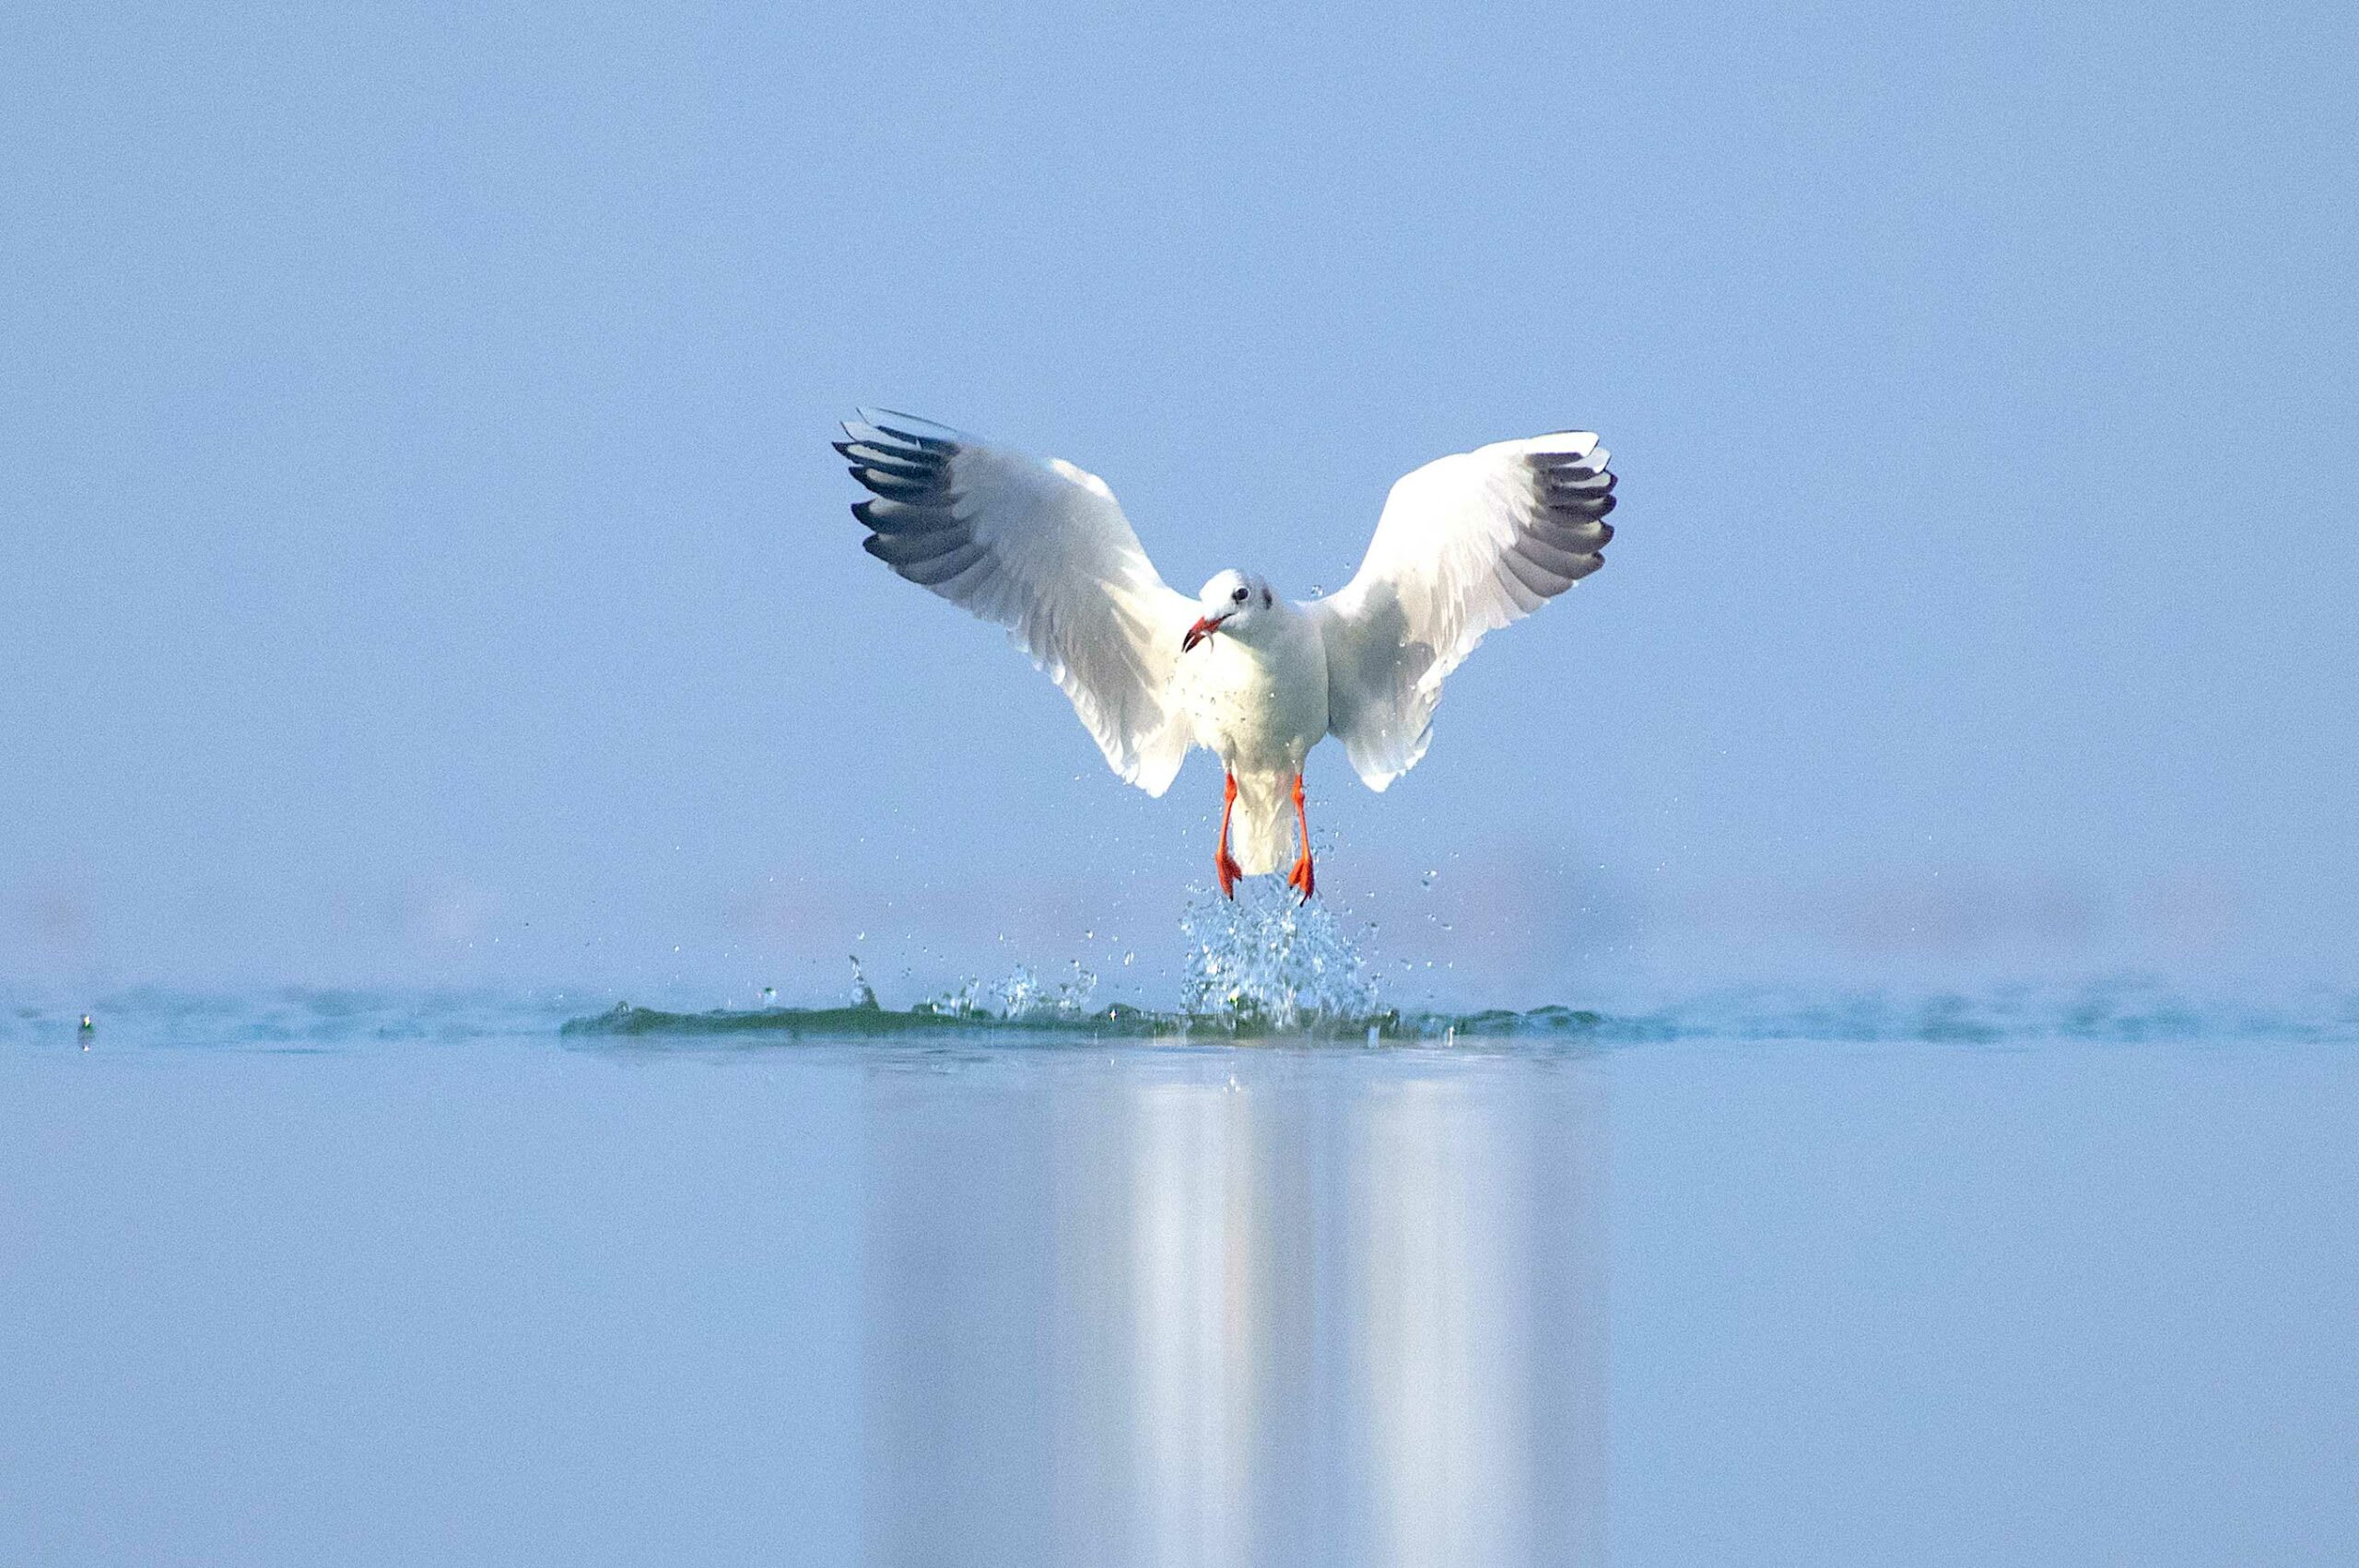 A black-headed gull scoops up a fish from the surface of a waterbody in Jamnagar. One of the smaller gull species, it takes prey from the water's surface while swimming or by dipping its head underwater. It also feeds on aquatic and terrestrial insects, earthworms, marine invertebrates, and grains.  As their popular names indicate, black-headed and brown-headed gulls sport a dark hood during the breeding season. However, during the non-breeding season in winter, they shed the dark hood, leaving only a dark spot behind the eye. Photo: Neel Sureja  Cover photo: Mayank Soni